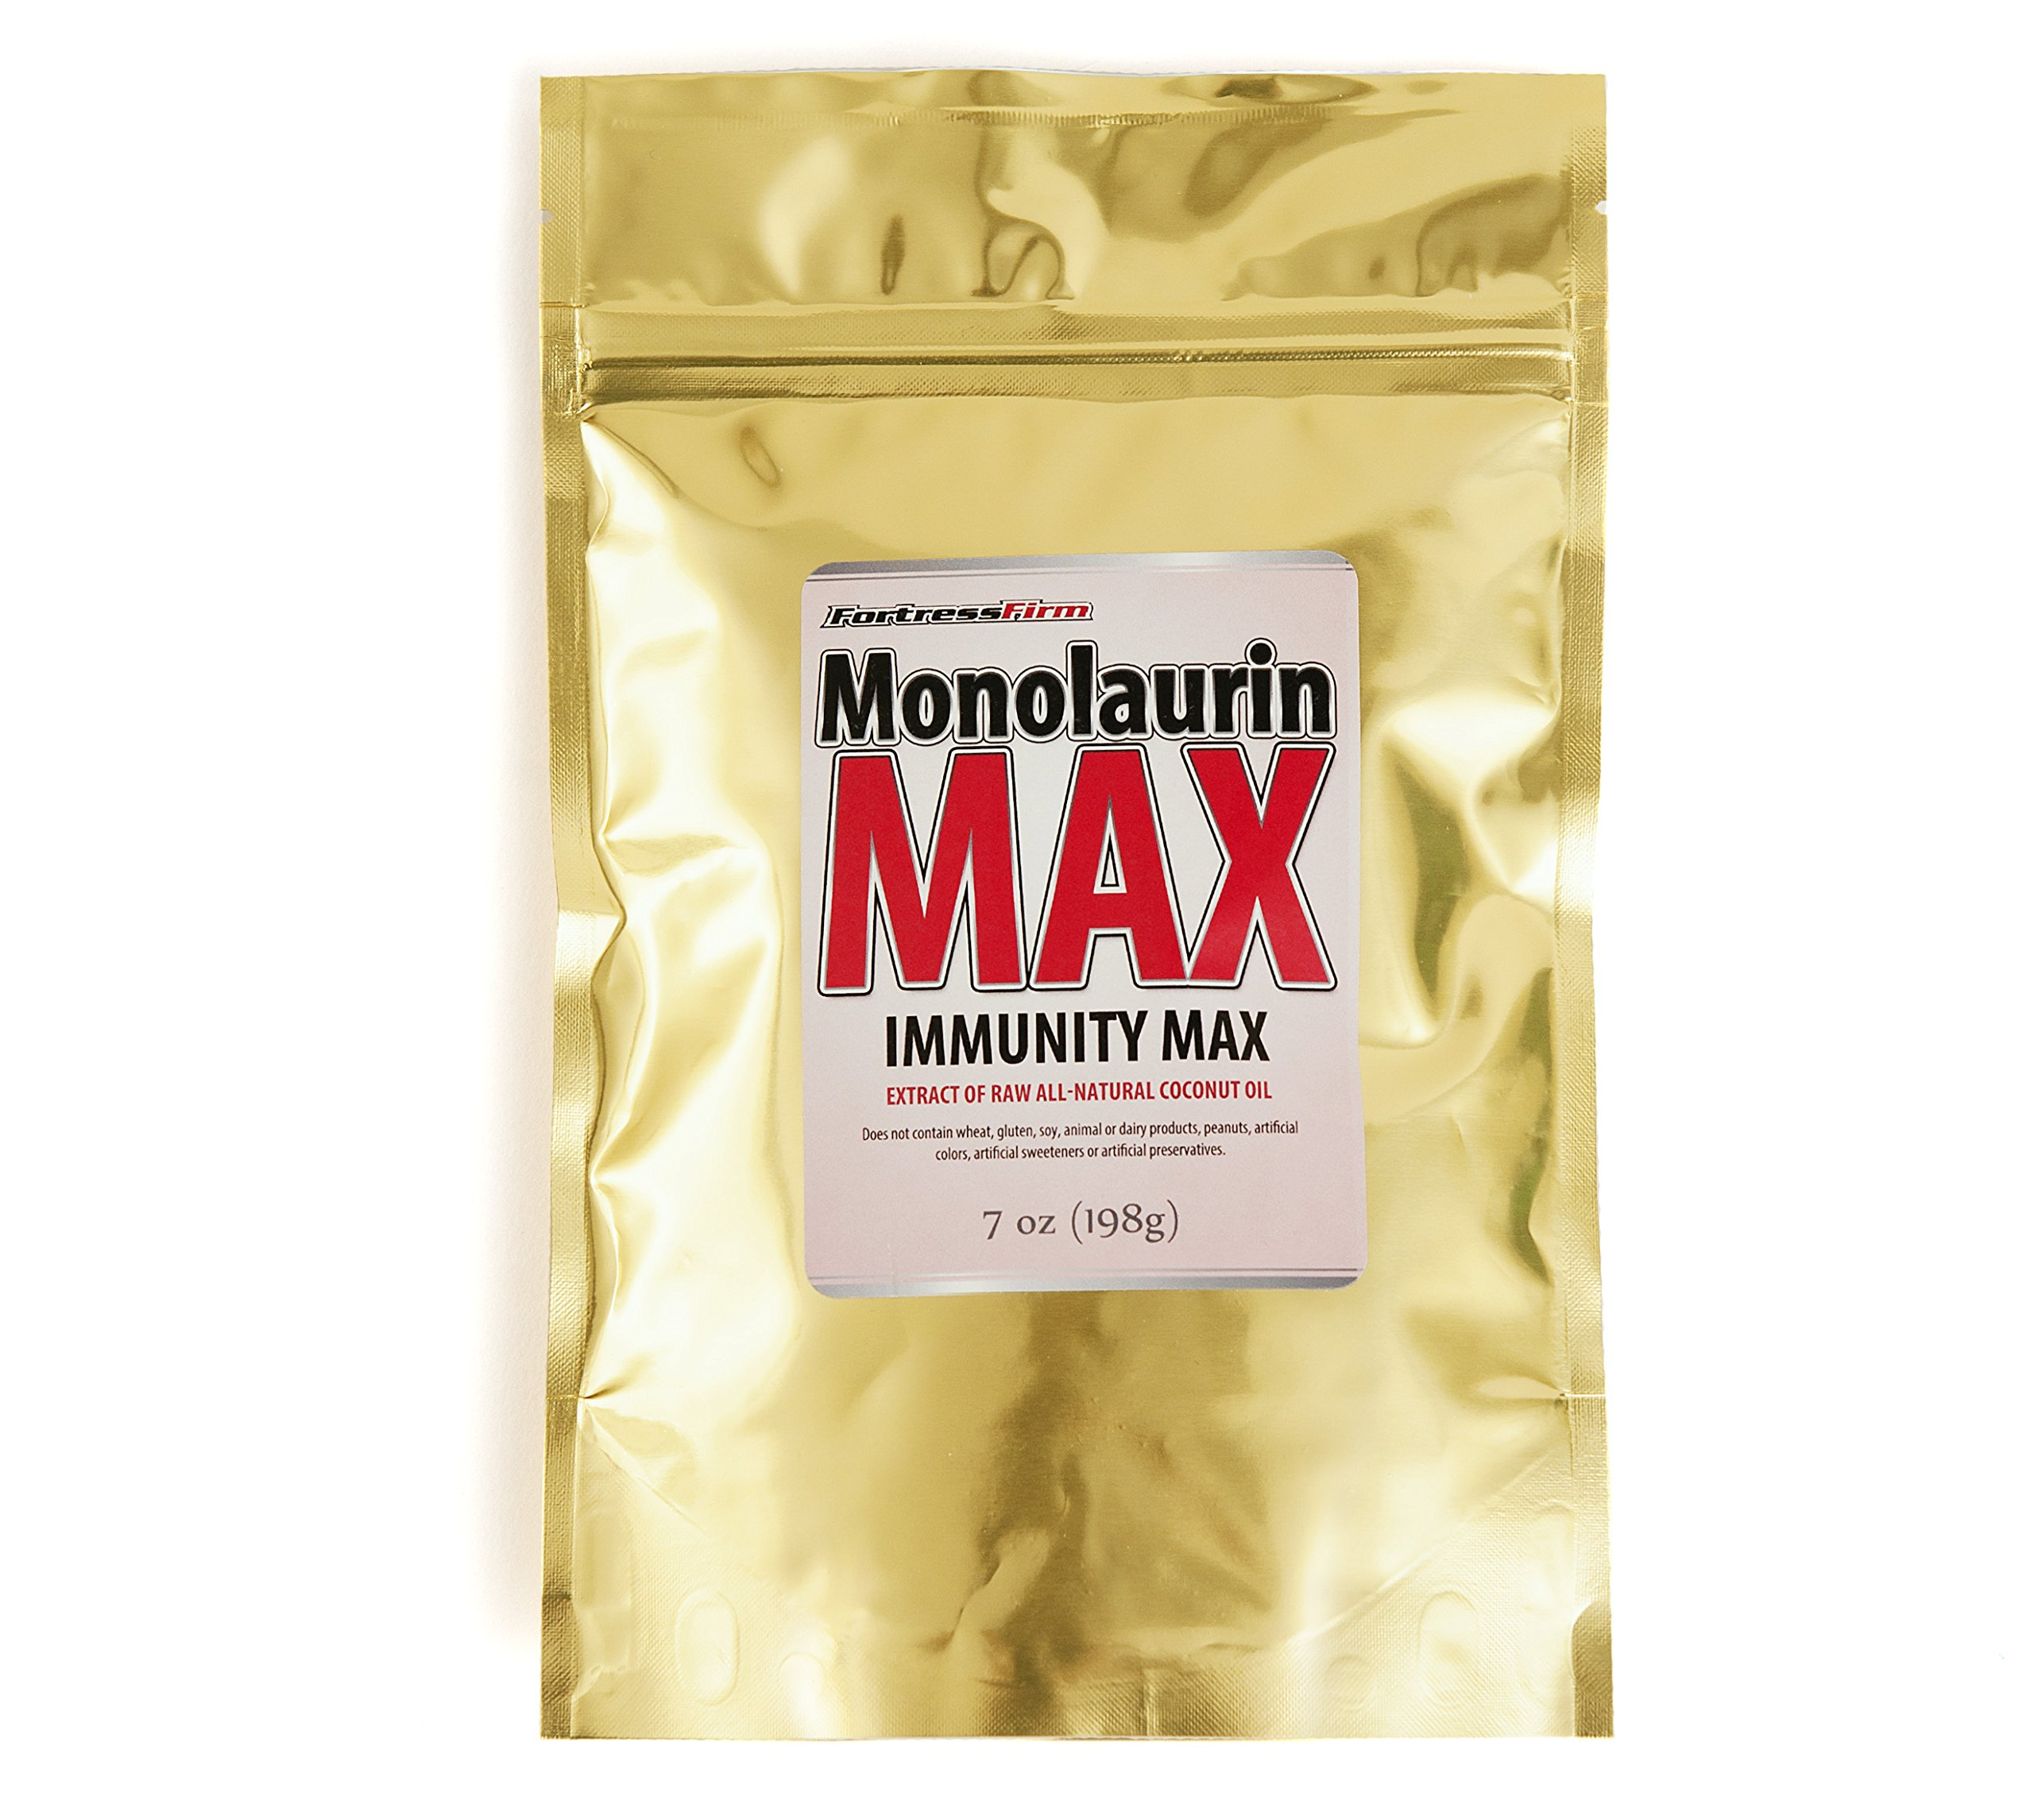 Monolaurin Max - Raw Coconut Oil Supplements All-Natural Immune System Booster King of the Immune System Boosters & Monolaurin Pellets Better Quality & Priced Than Monolaurin 1200mg & Monolaurin 600mg